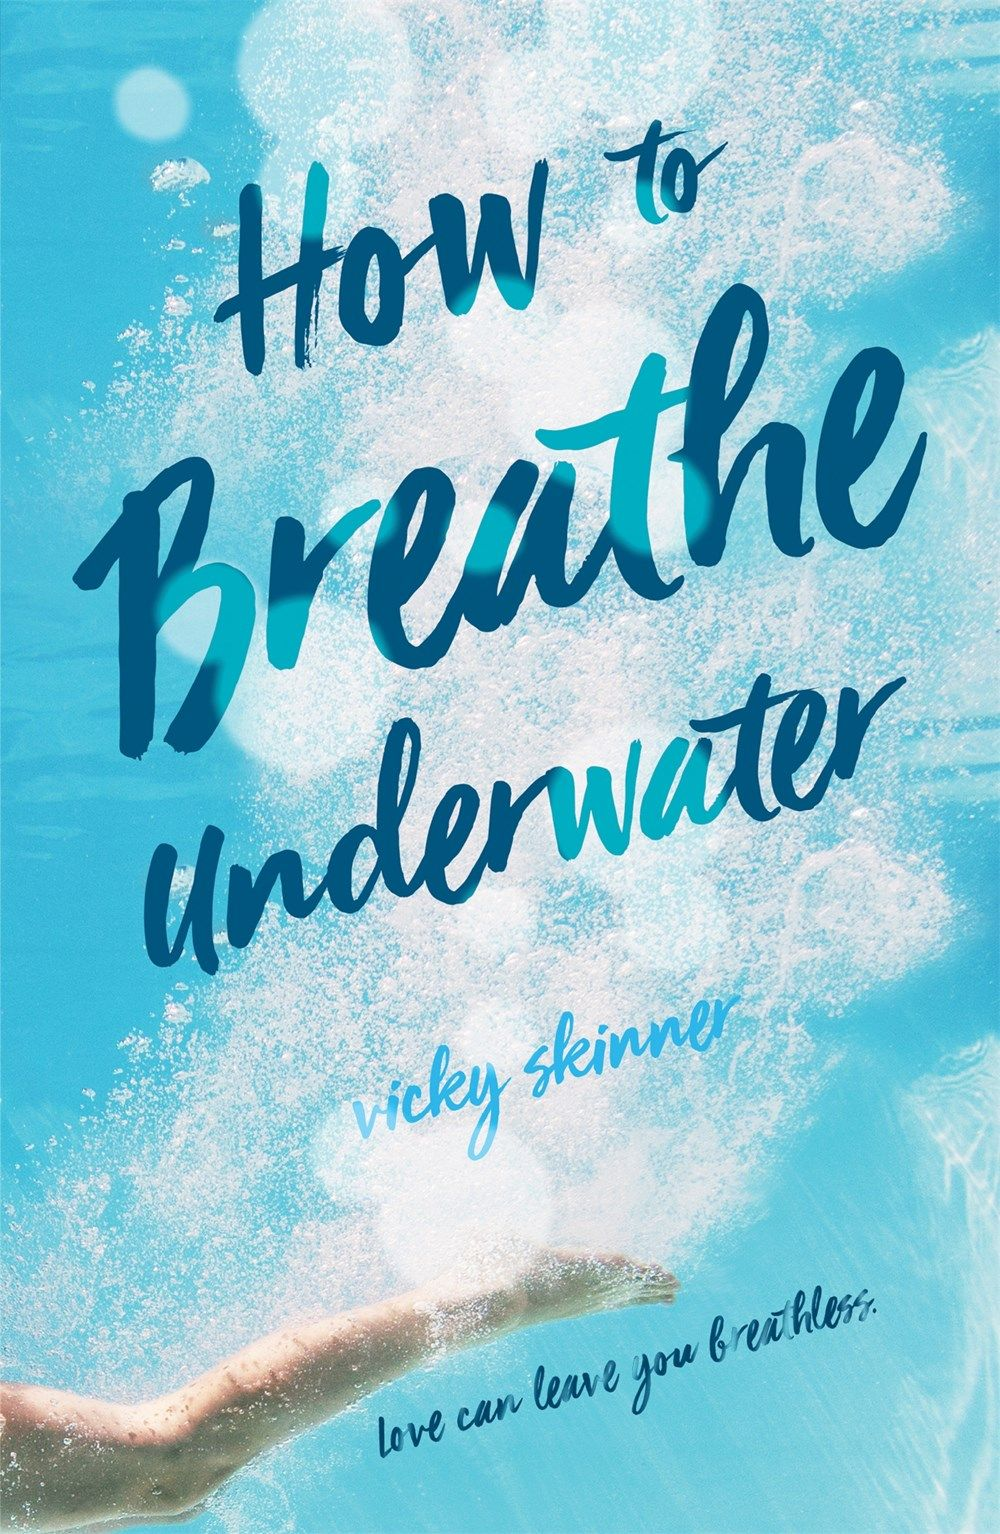 How To Breathe Underwater By Vicky Skinner Breathing Underwater Swoon Reads Best Summer Reads